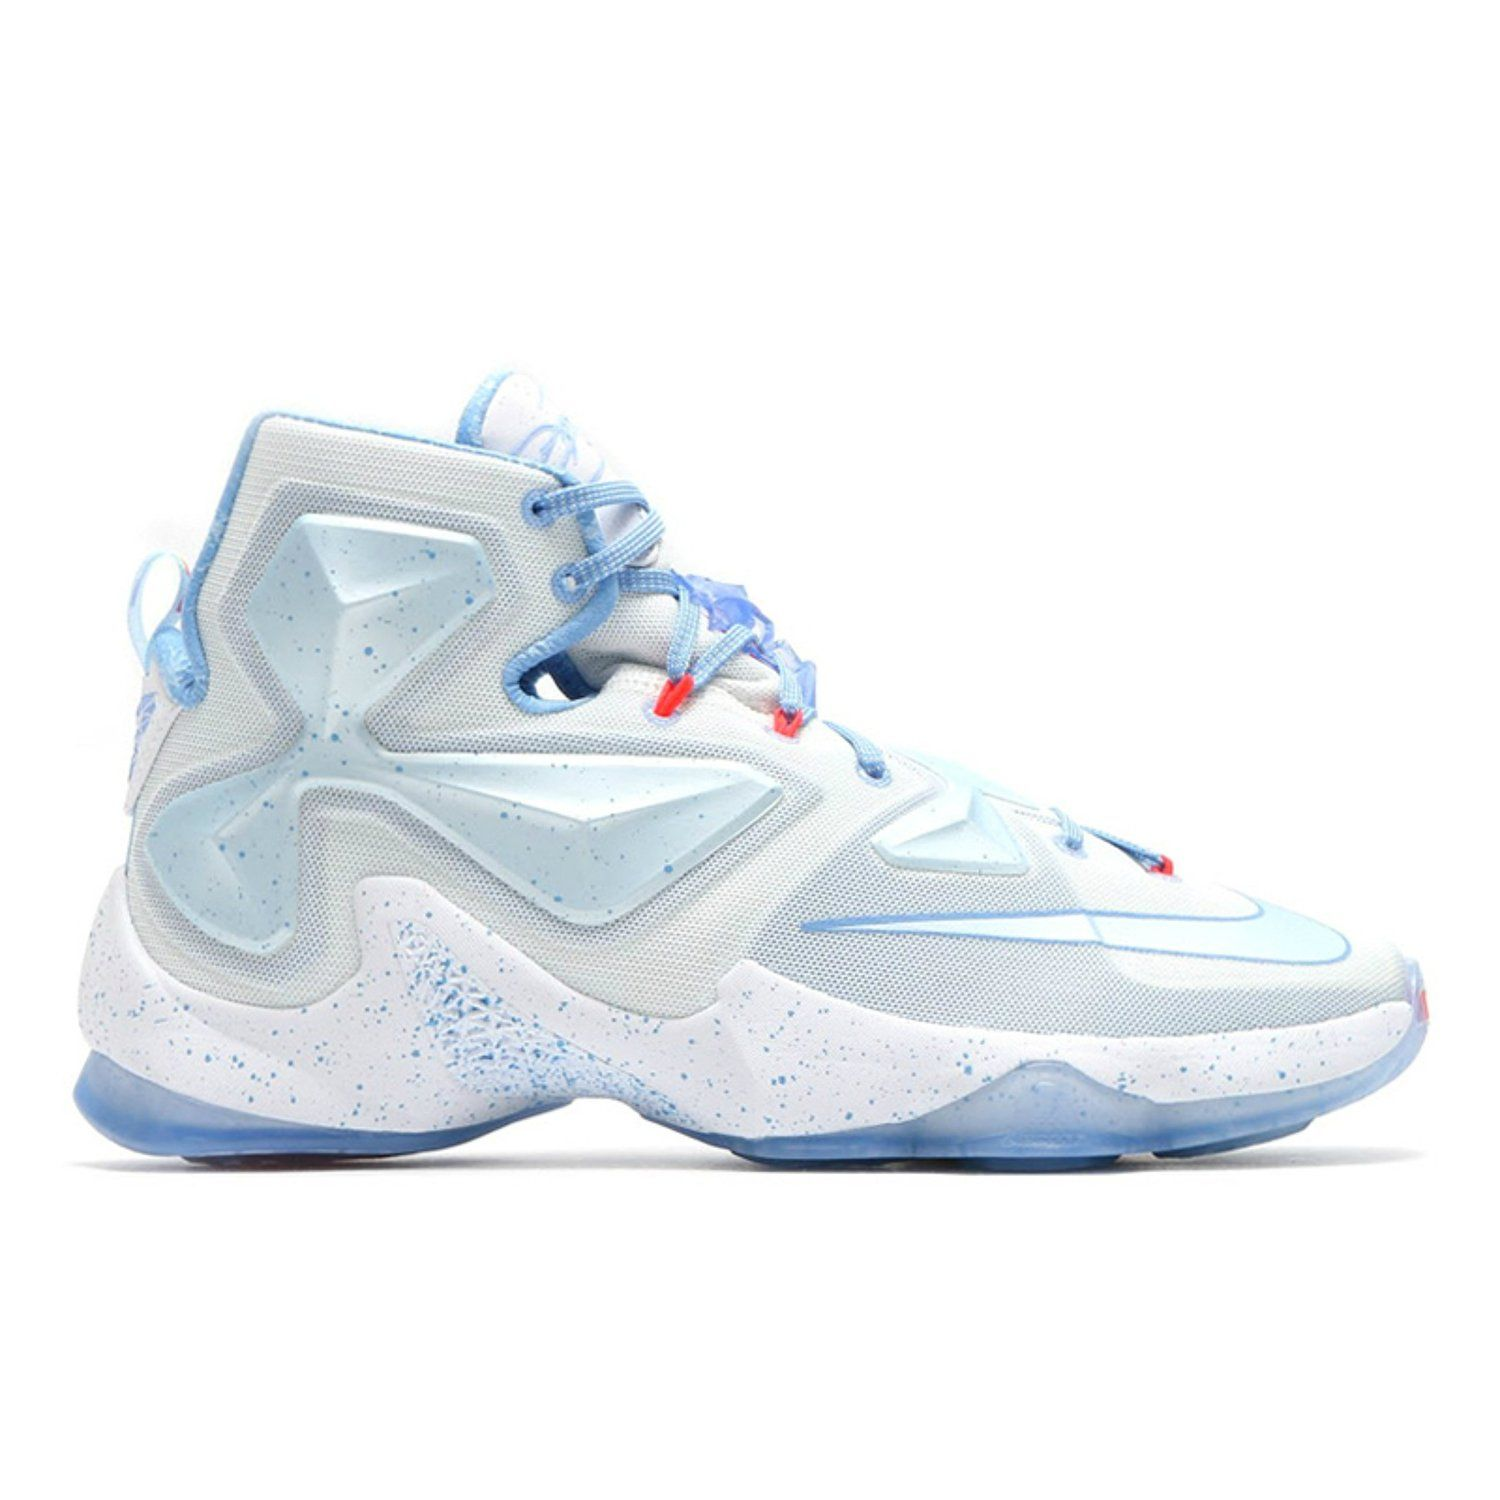 new arrival 0f9a4 5d69e Amazon.com  nike lebron XIII XMAS mens hi top basketball trainers 816278  sneakers shoes (13)  Clothing